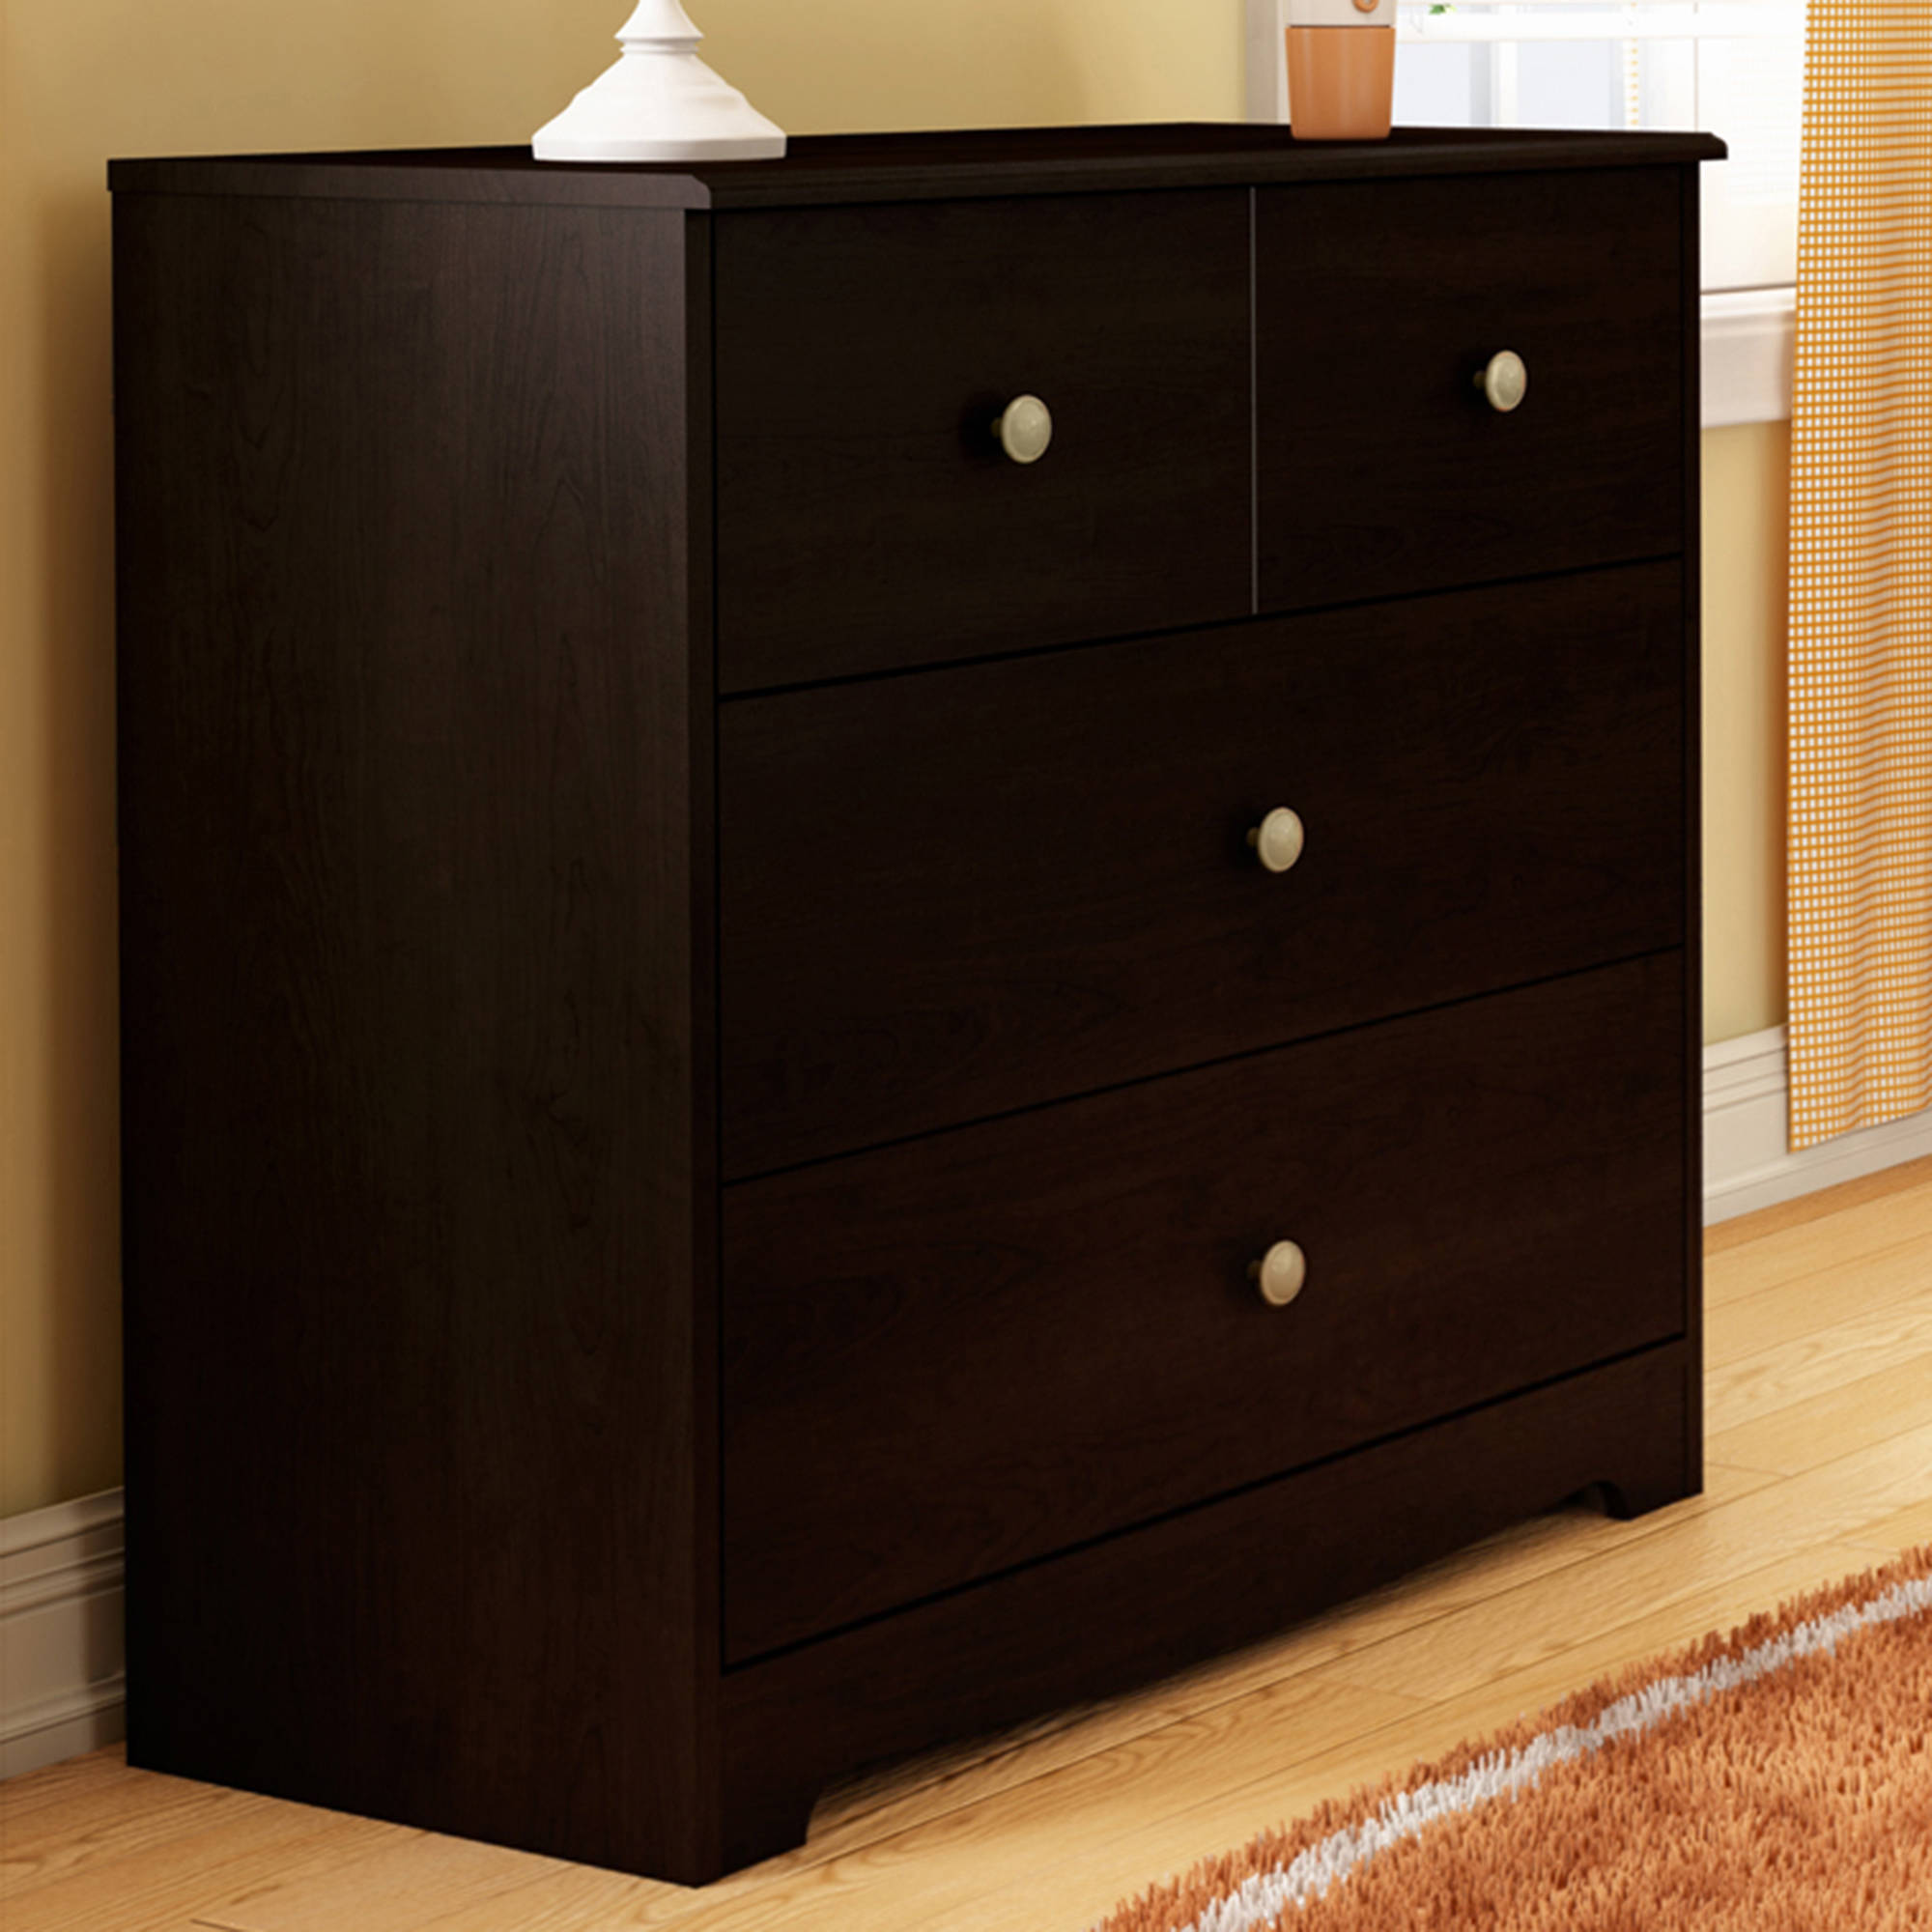 width tambor height dresser product smith chairish dyrlund image drawer aspect of rosewood fit